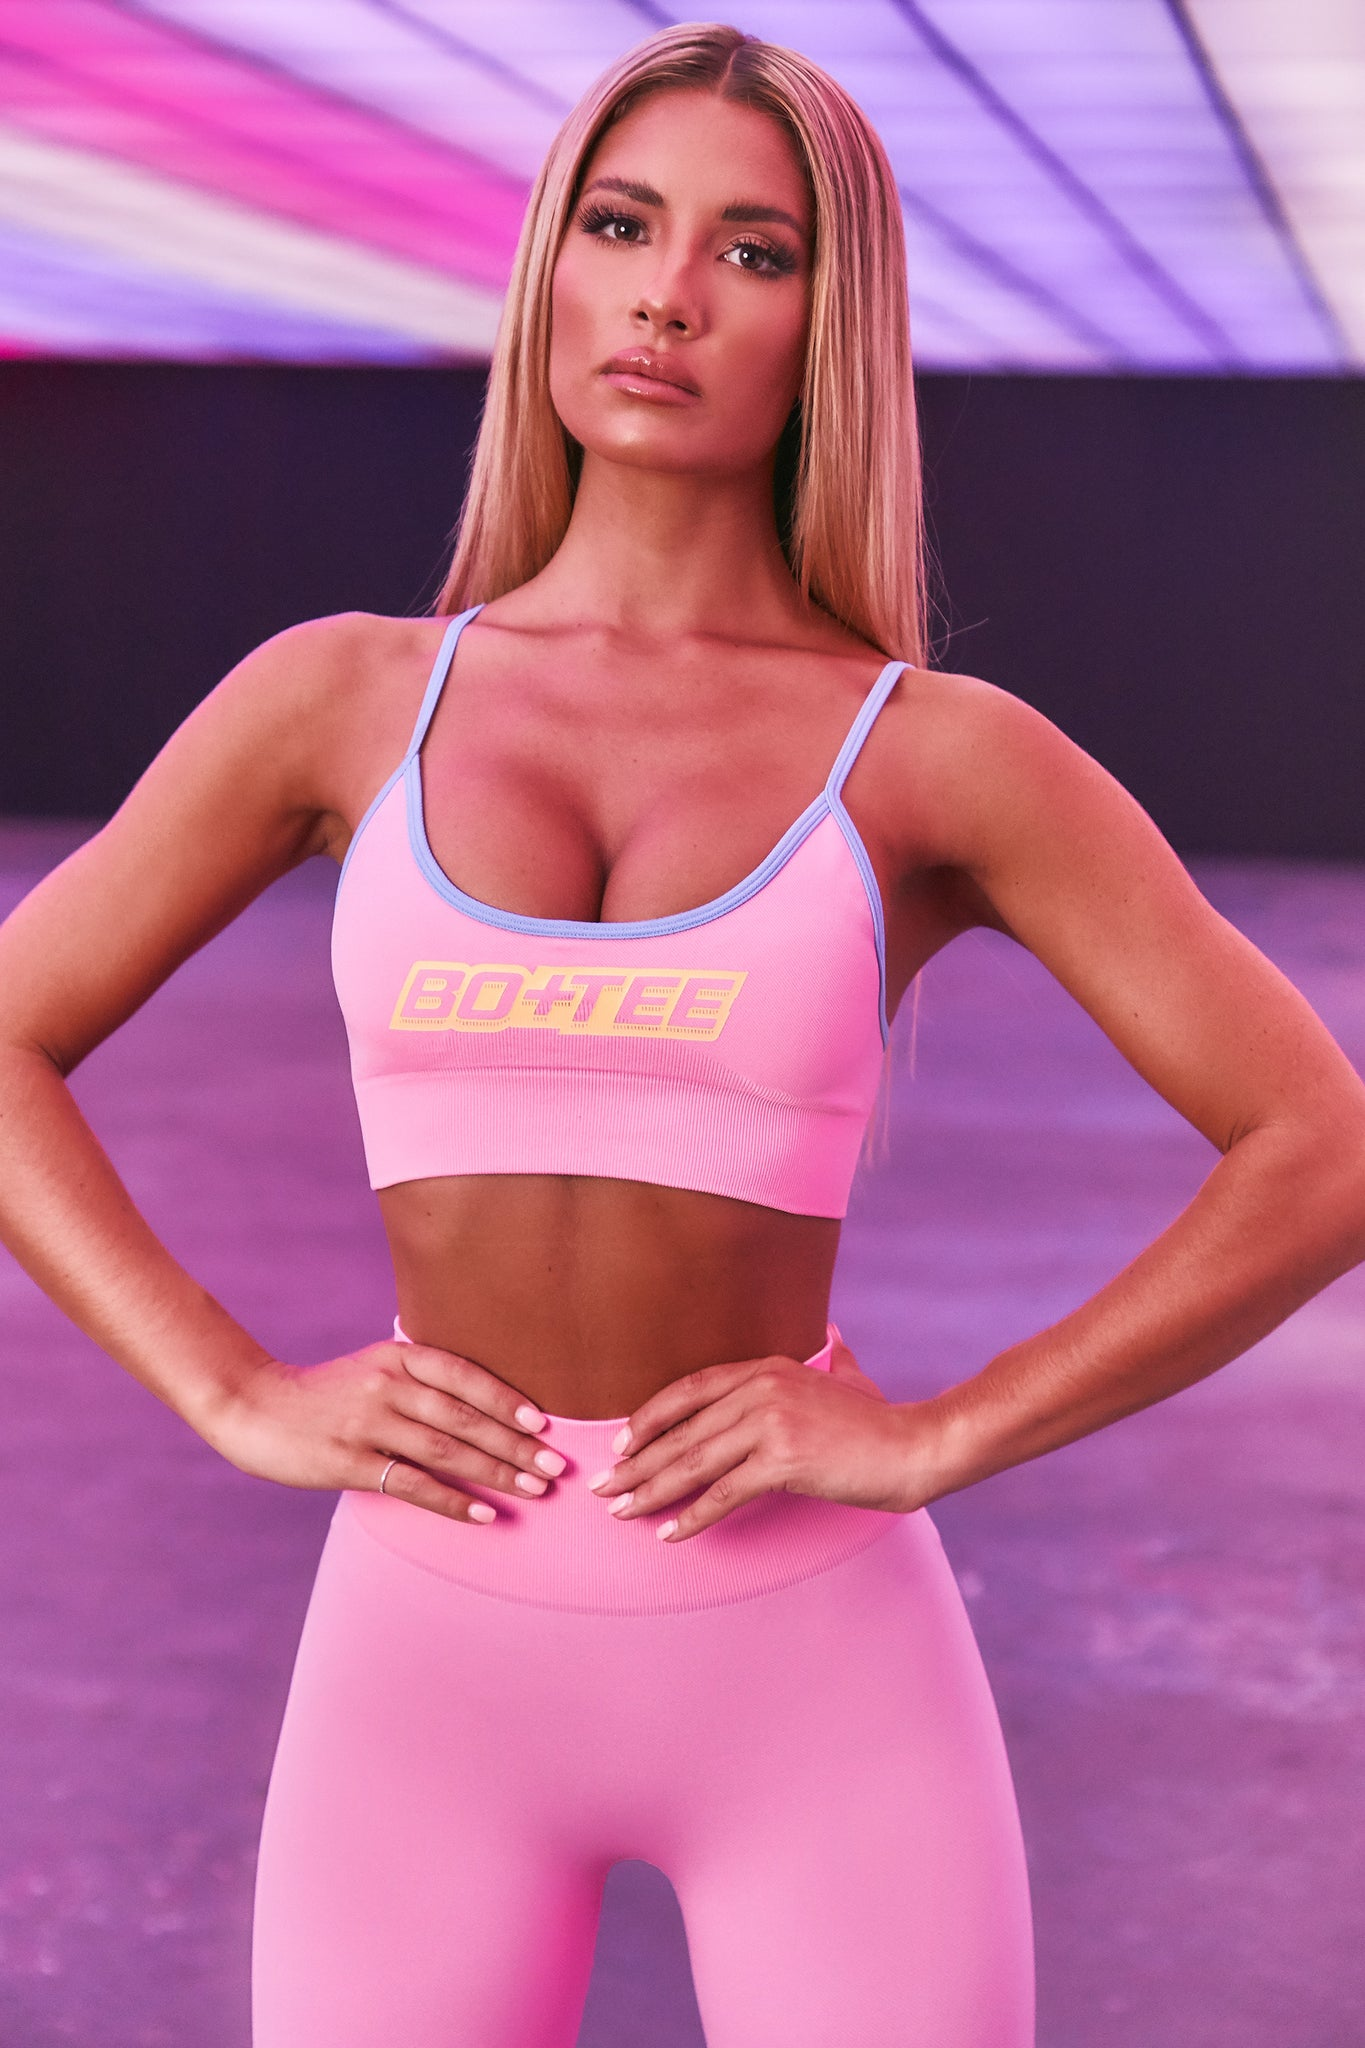 Pink seamless sports bra with scoop neckline and contrasting blue straps. 3D branding across the chest. Image 1 of 6.